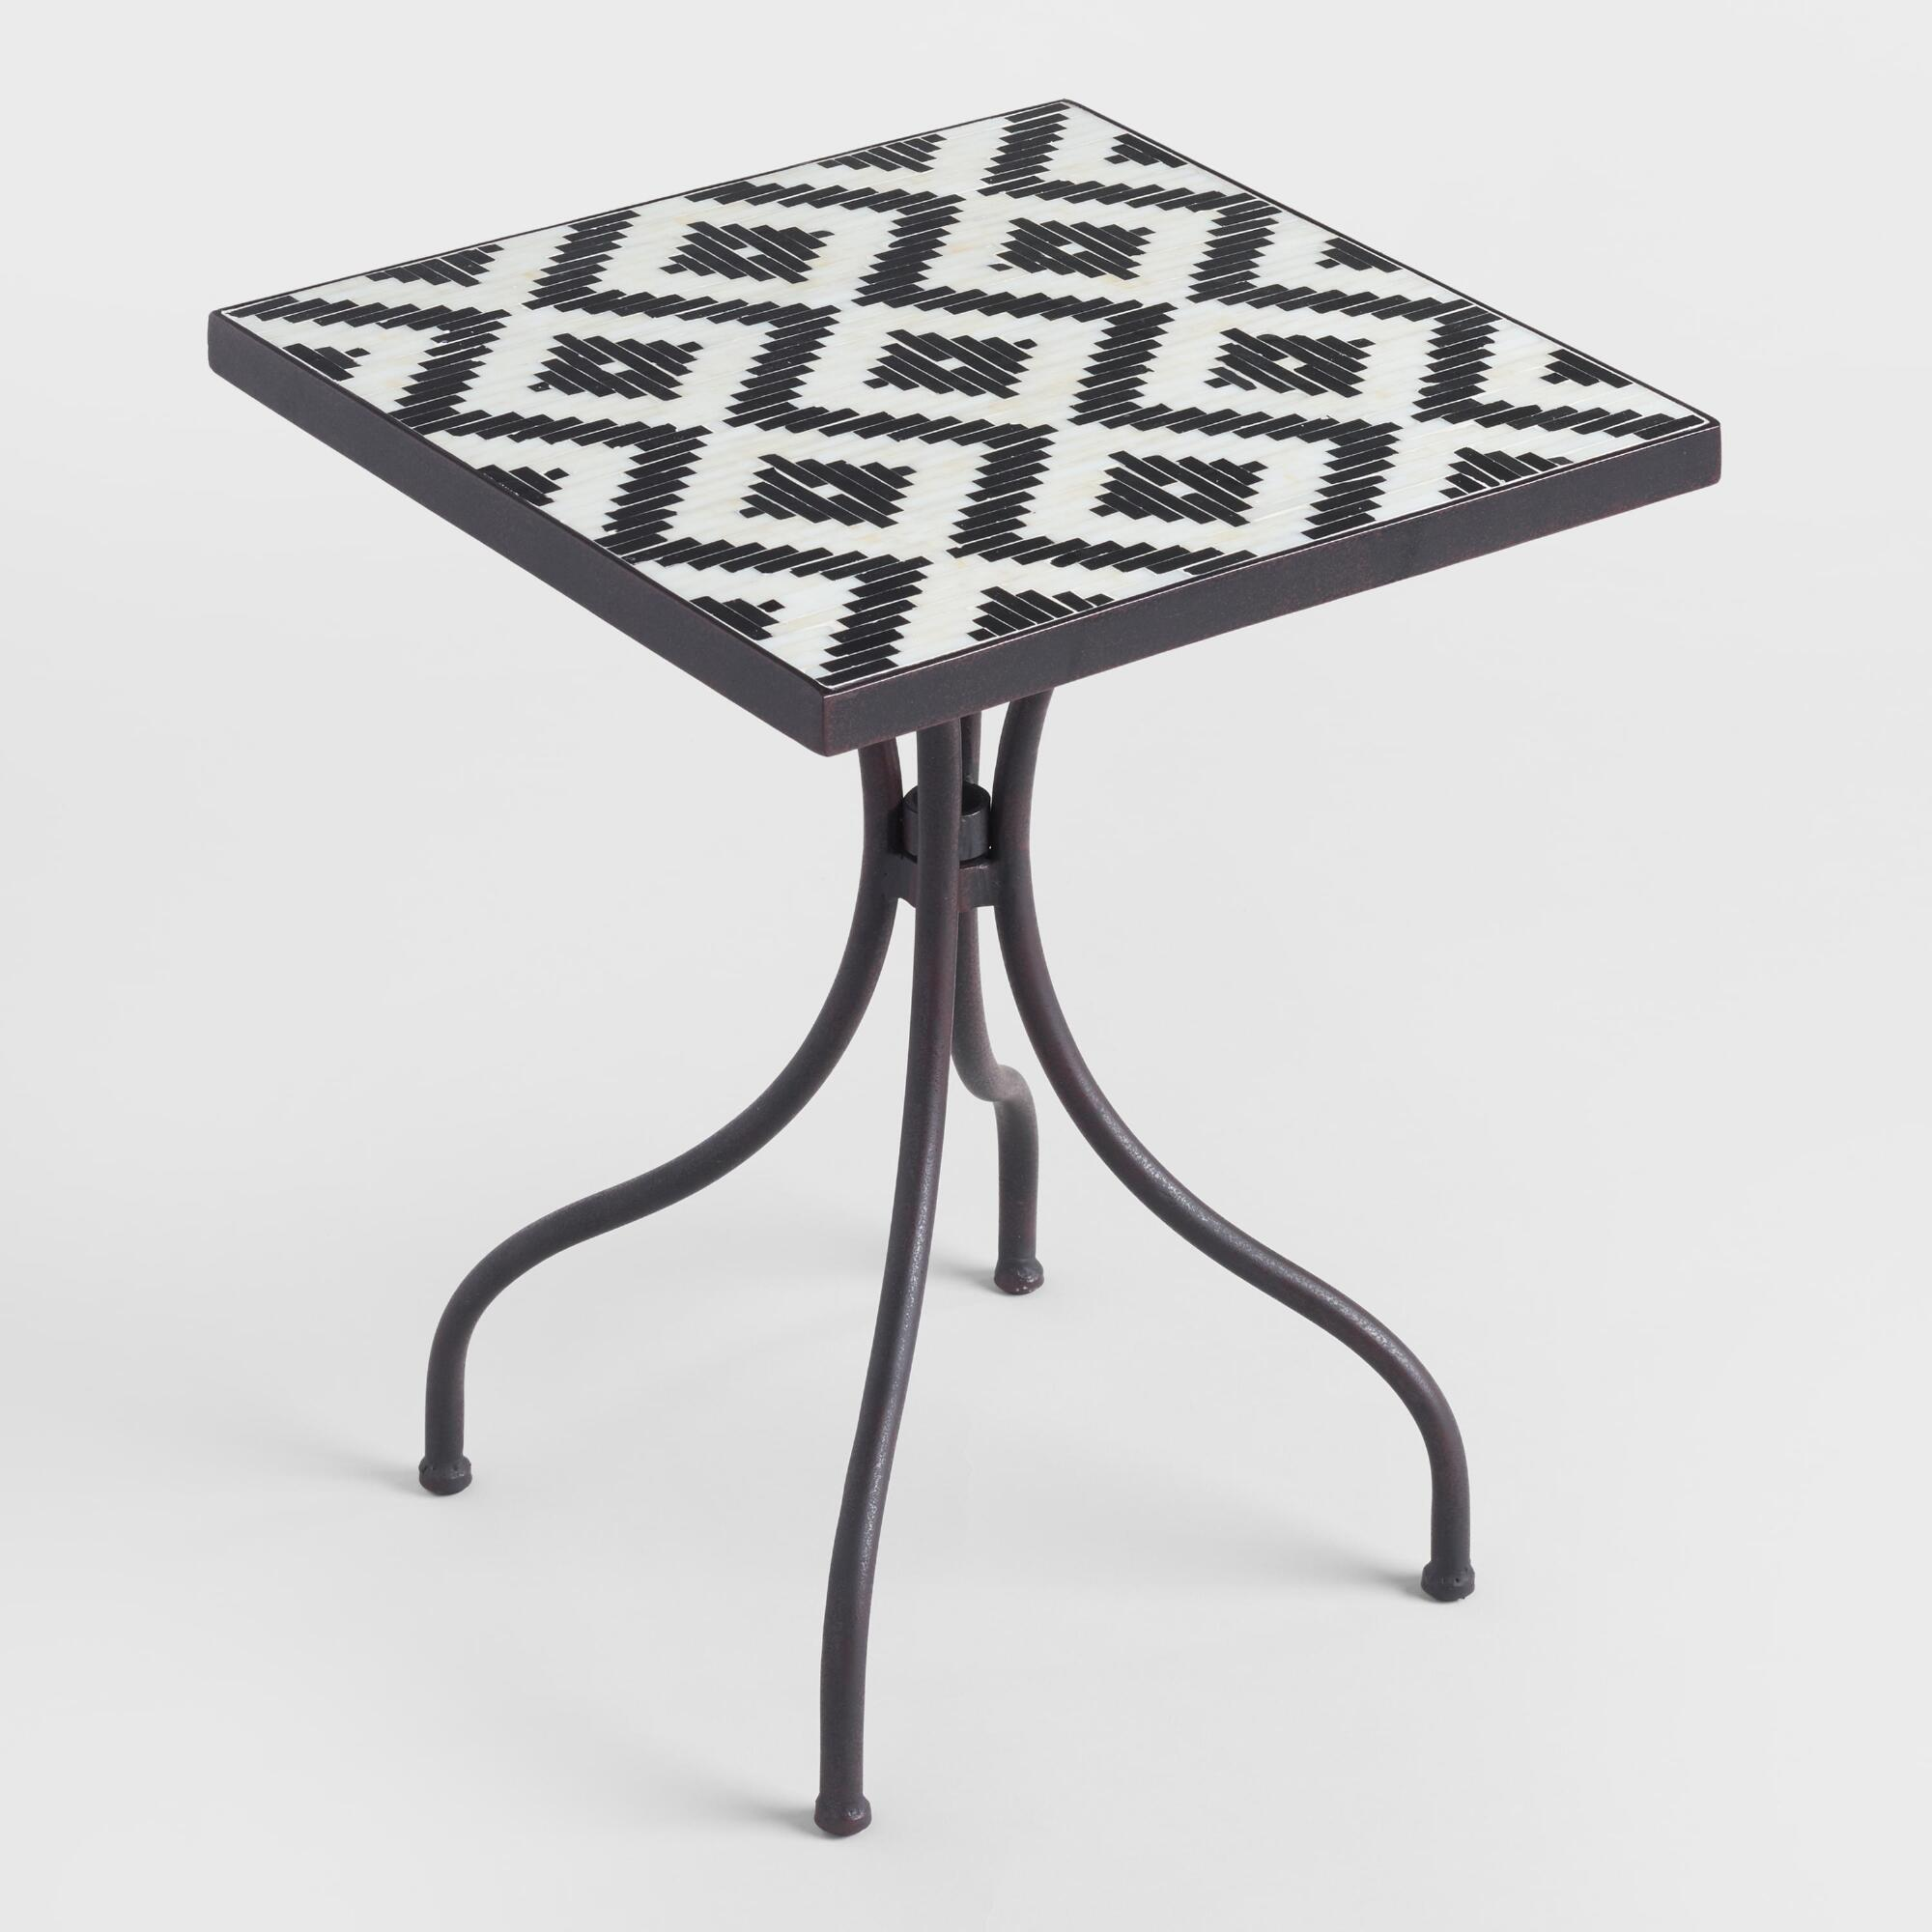 square black and white cadiz outdoor accent table world market iipsrv fcgi metal red asian lamp diy industrial coffee grey rattan side round mid century tray jcpenney bedroom